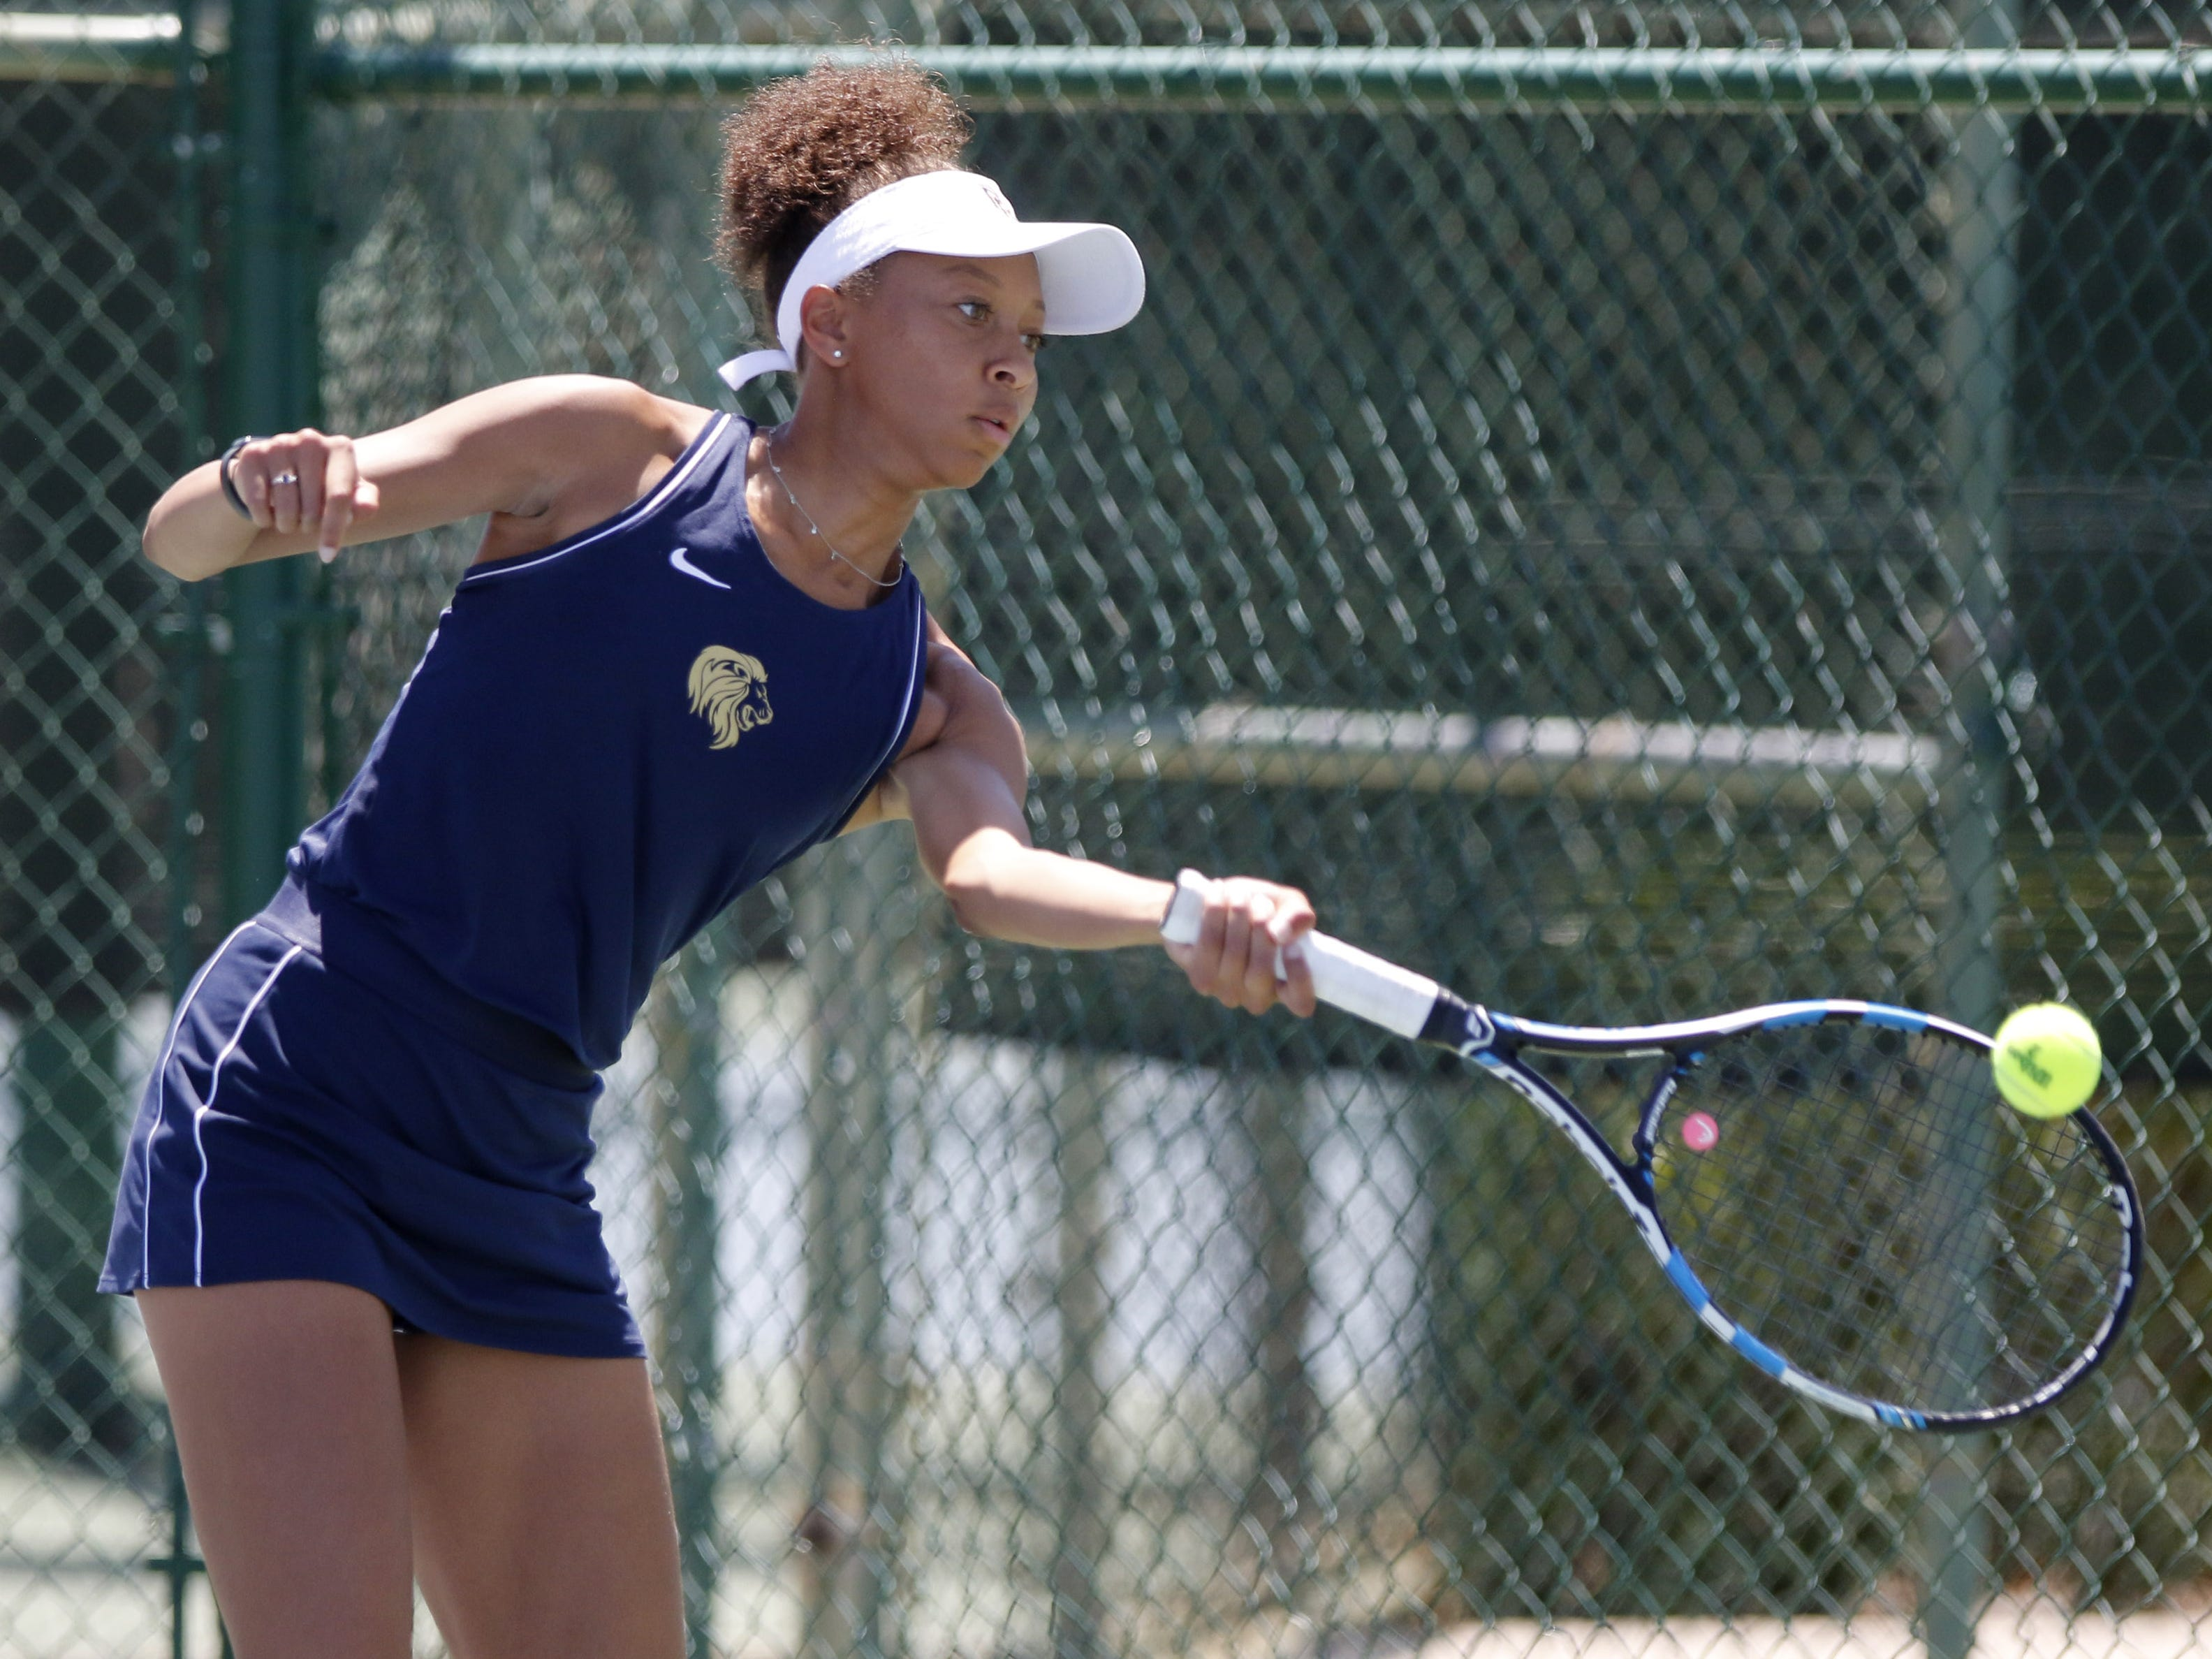 Pusch Ridge's Regan Harris returns a shot during her doubles match with Sofia Fetsis as they play against Thatcher during the Division III tennis team state championship in Glendale, Arizona, May 04, 2019.